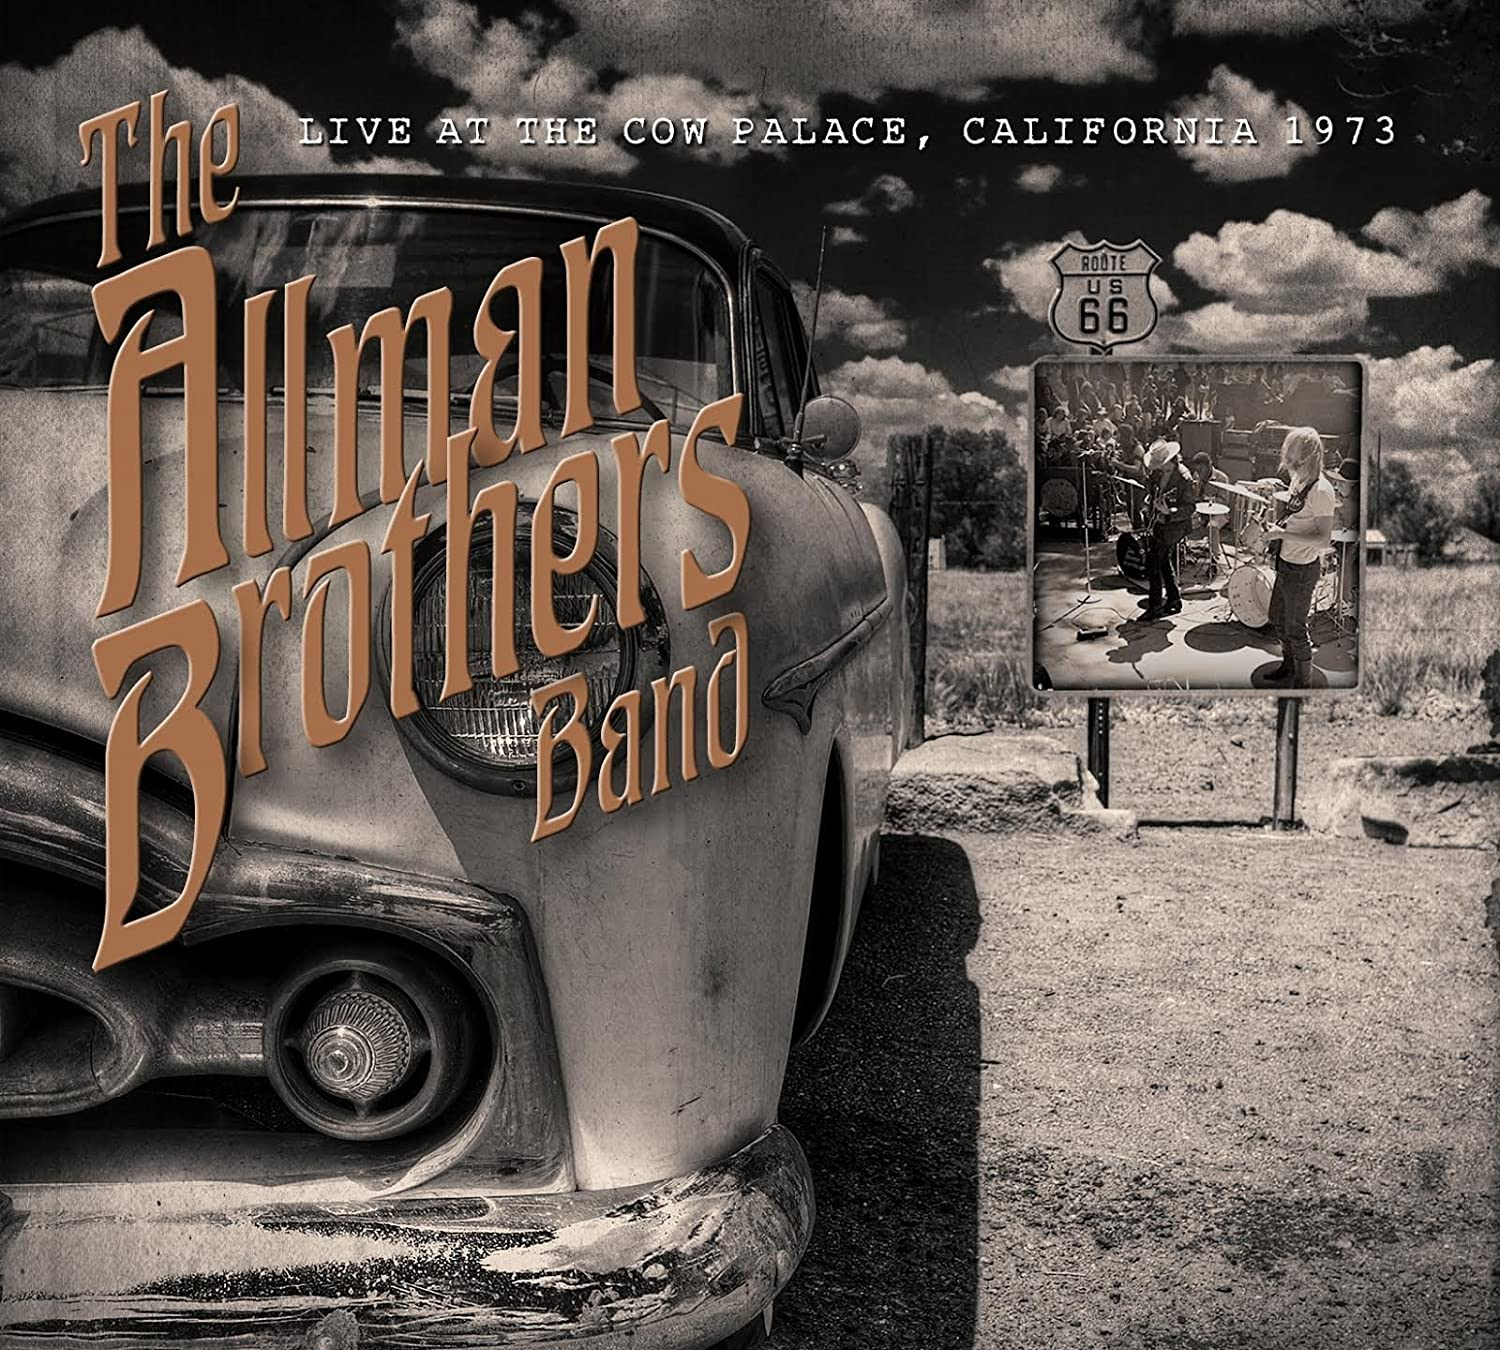 Live At The Cow Palace New Years Eve 1973 : the Allman Brothers ...